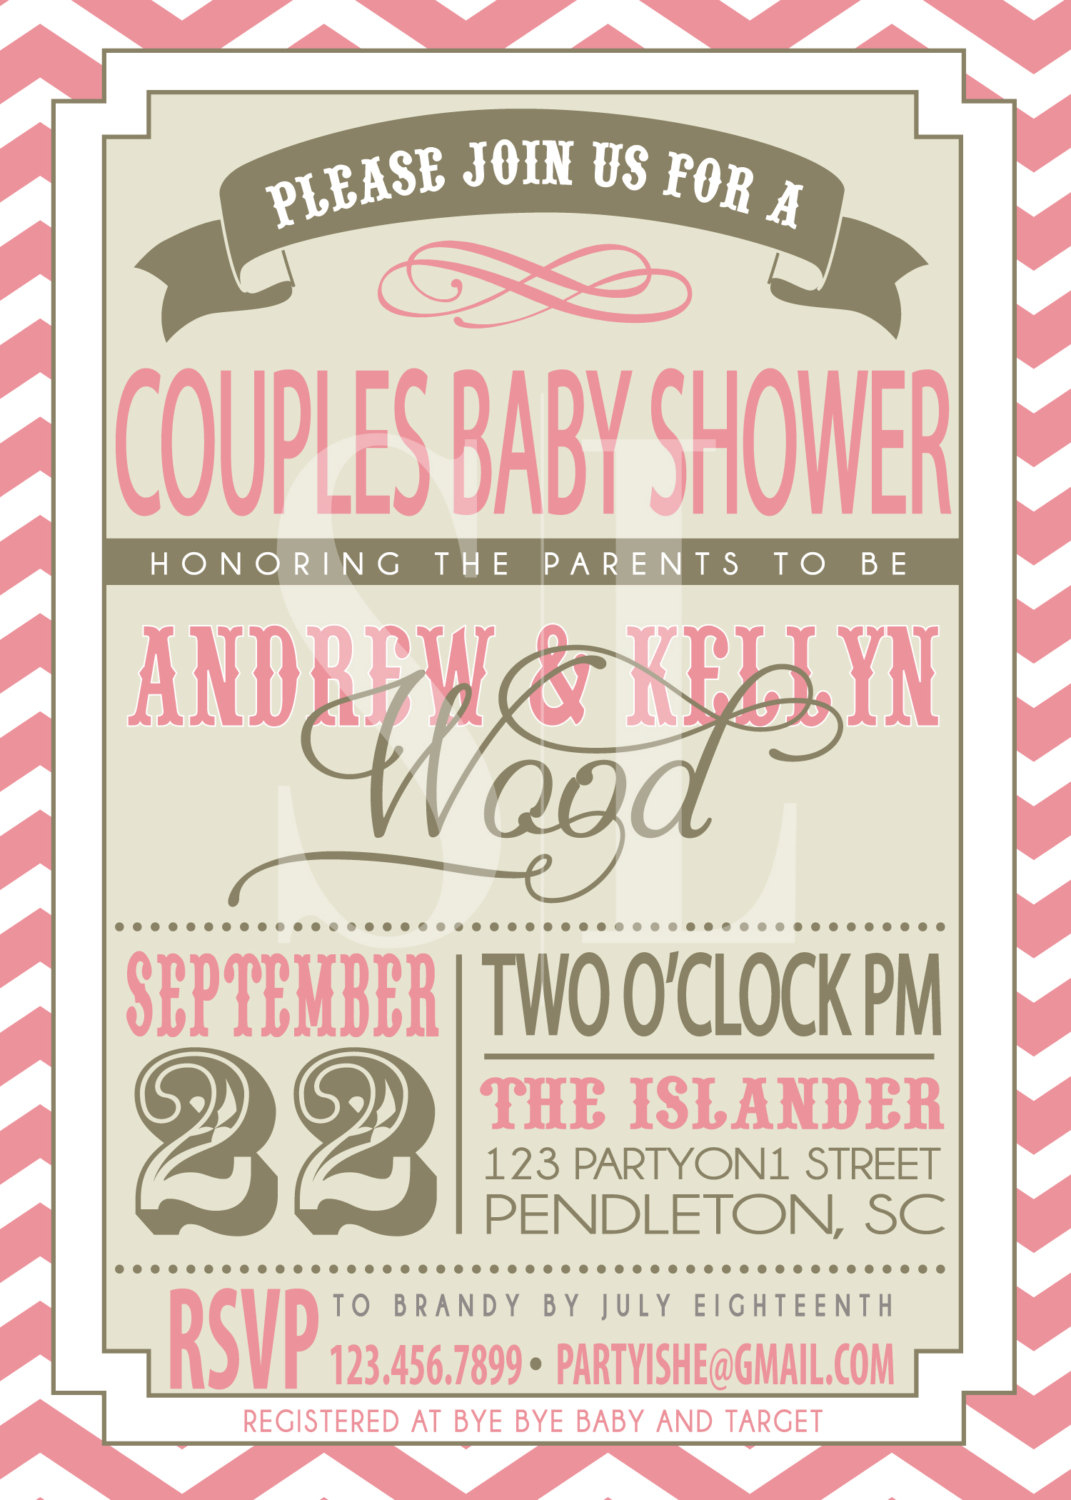 Creative Design Couples Ba Shower Marvellous Invitation Wording for sizing 1071 X 1500